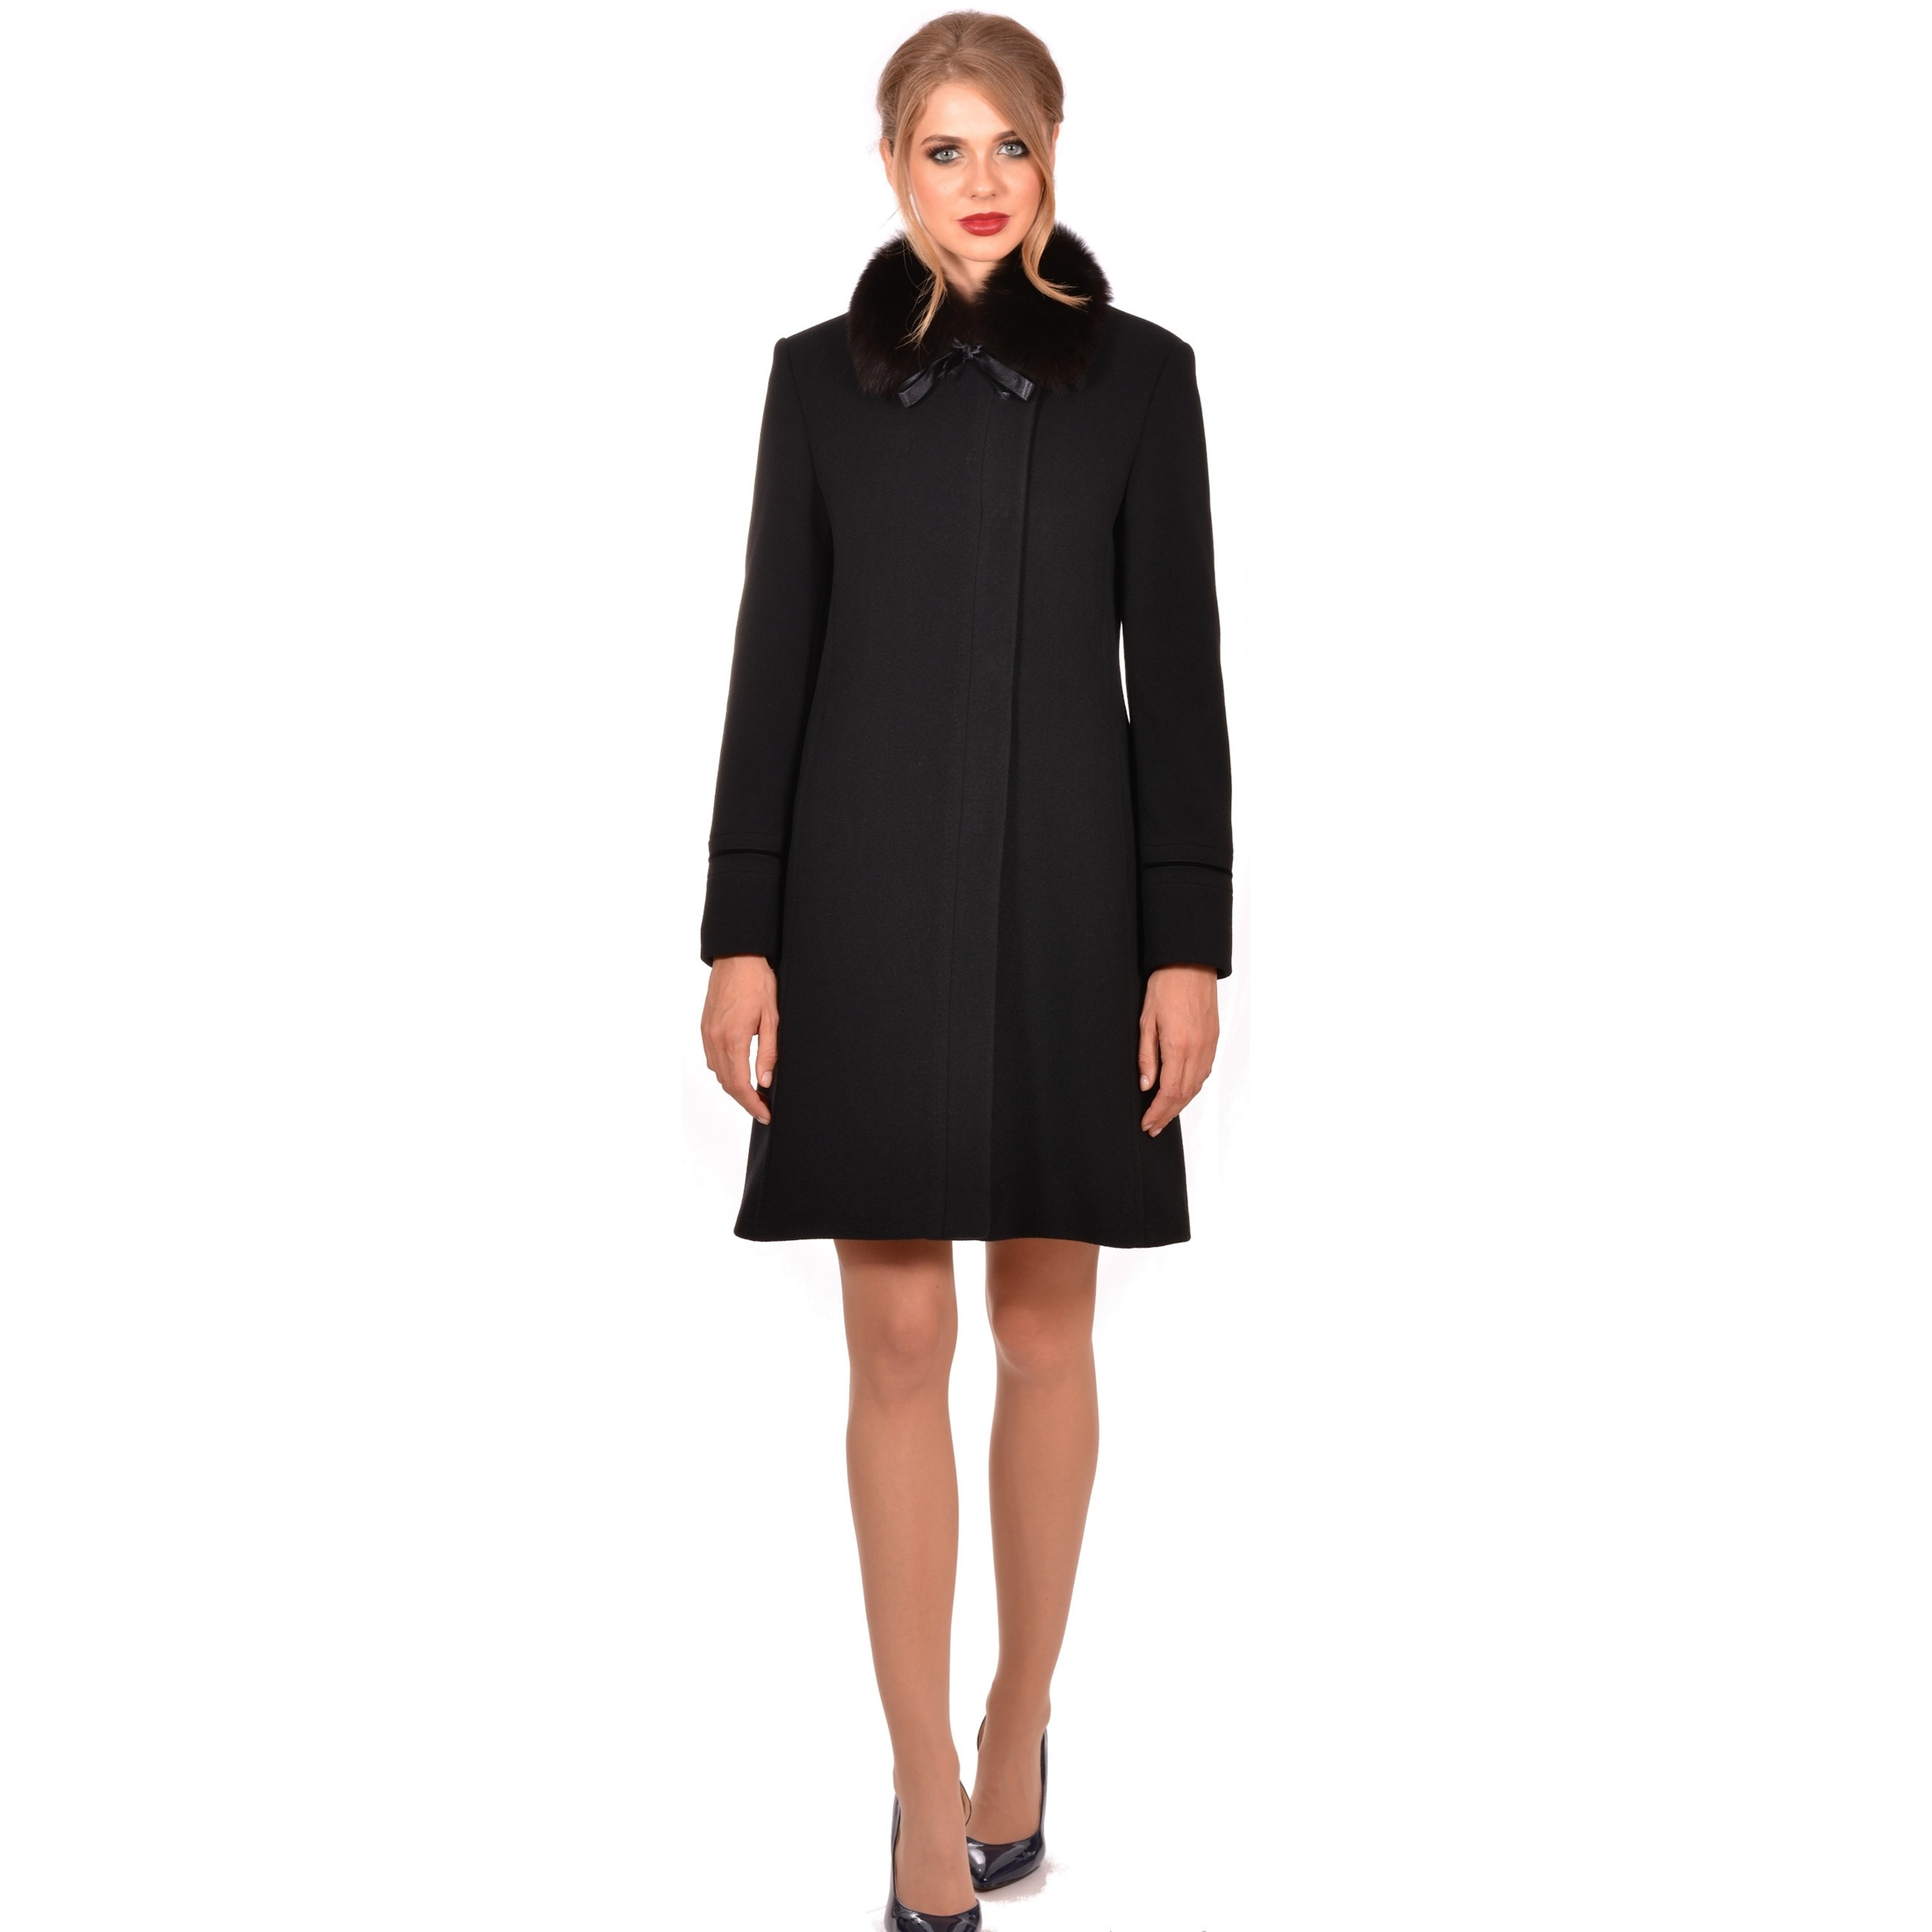 Picture of Women's Coat LADY M - LM40927